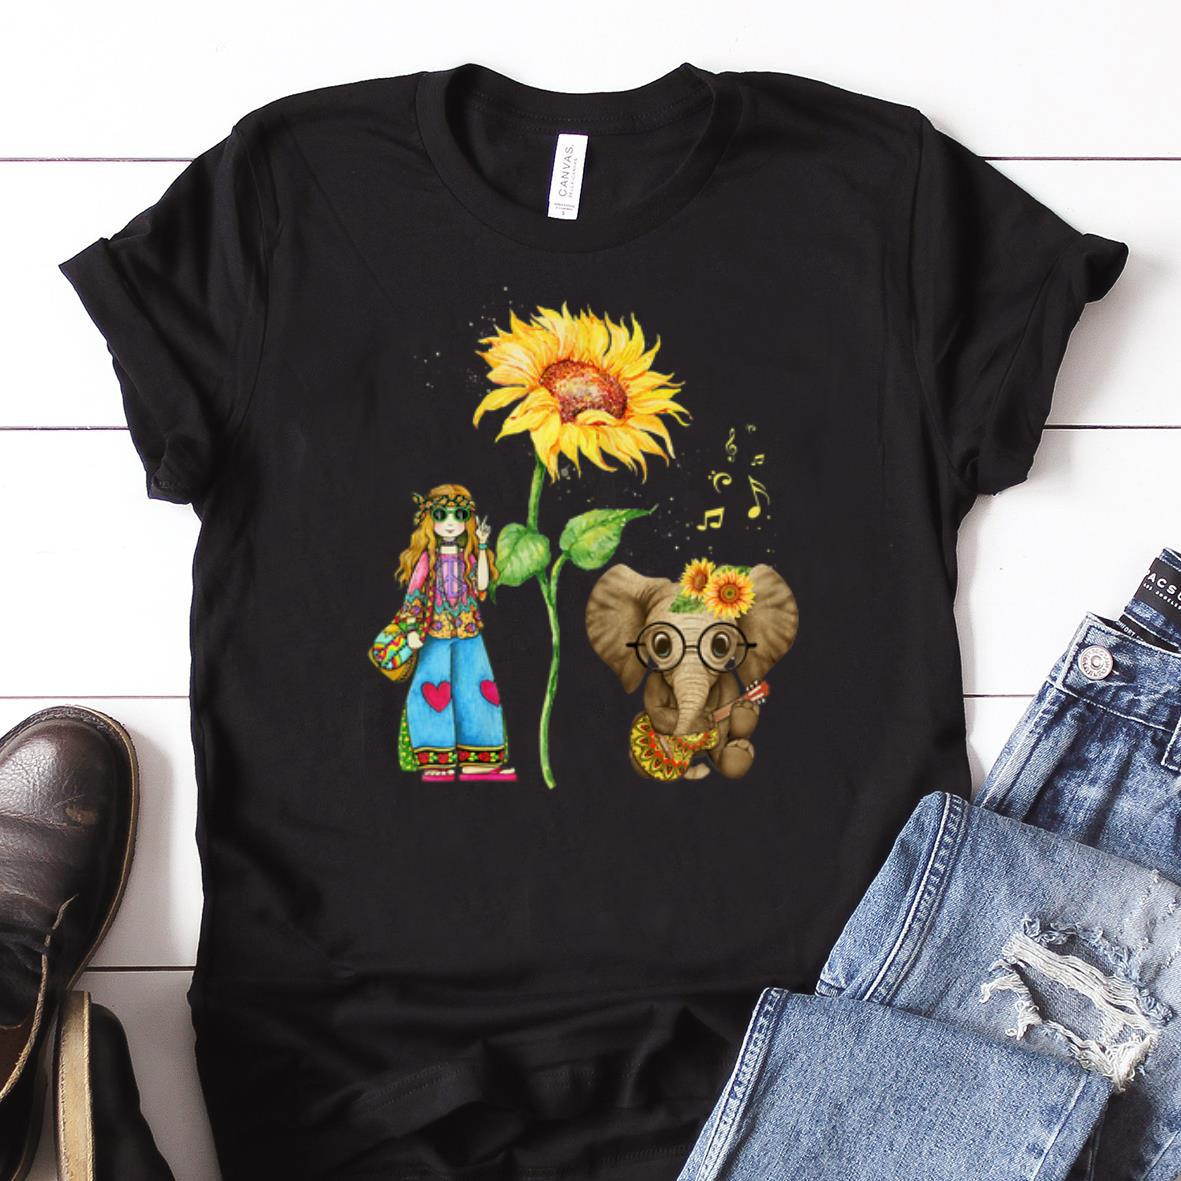 Awesome Hippie Girl Sunflower Elephant Guitar shirt 1 - Awesome Hippie Girl Sunflower Elephant Guitar shirt